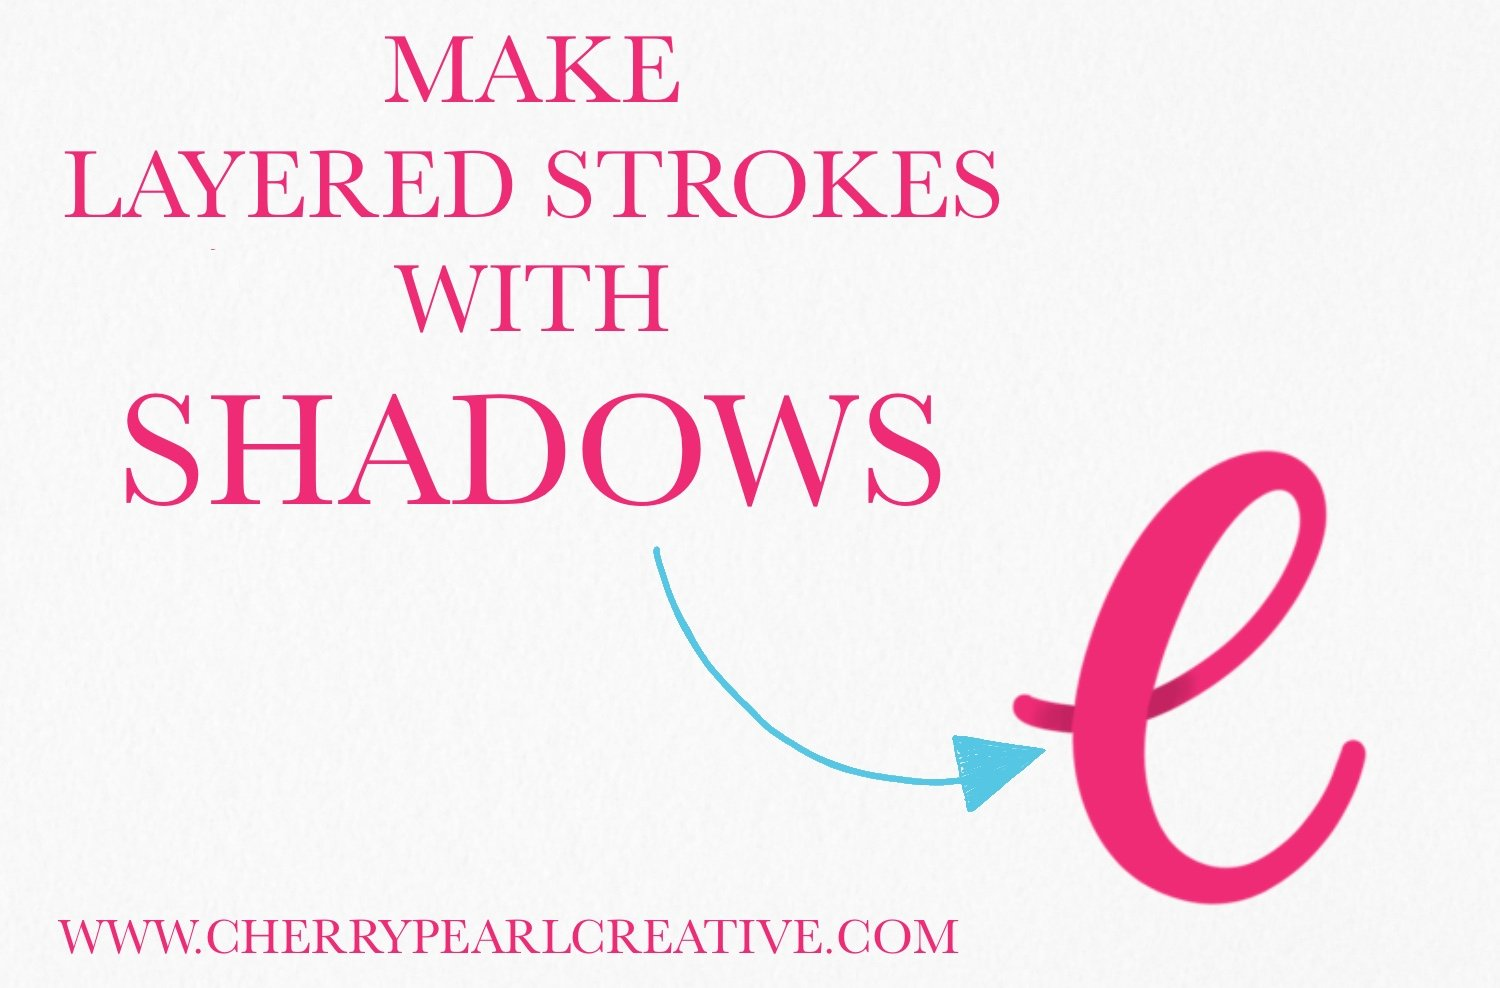 Layered Strokes Shadows for Lettering - Cherry Pearl Creative